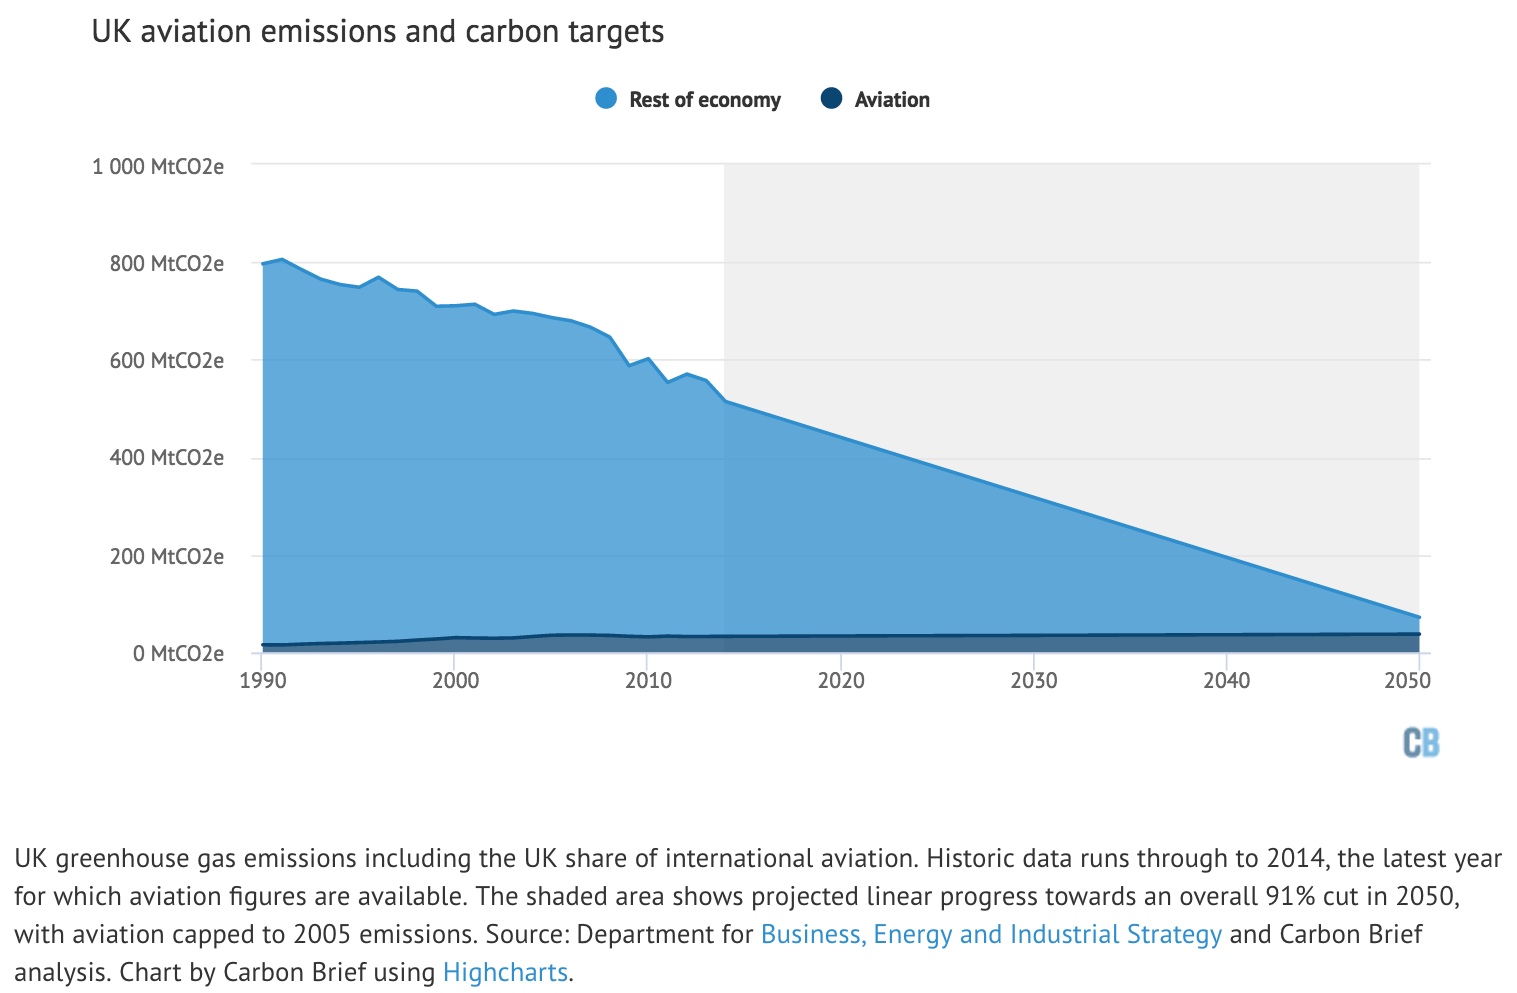 uk-and-aviation-co2-emissions-to-2050